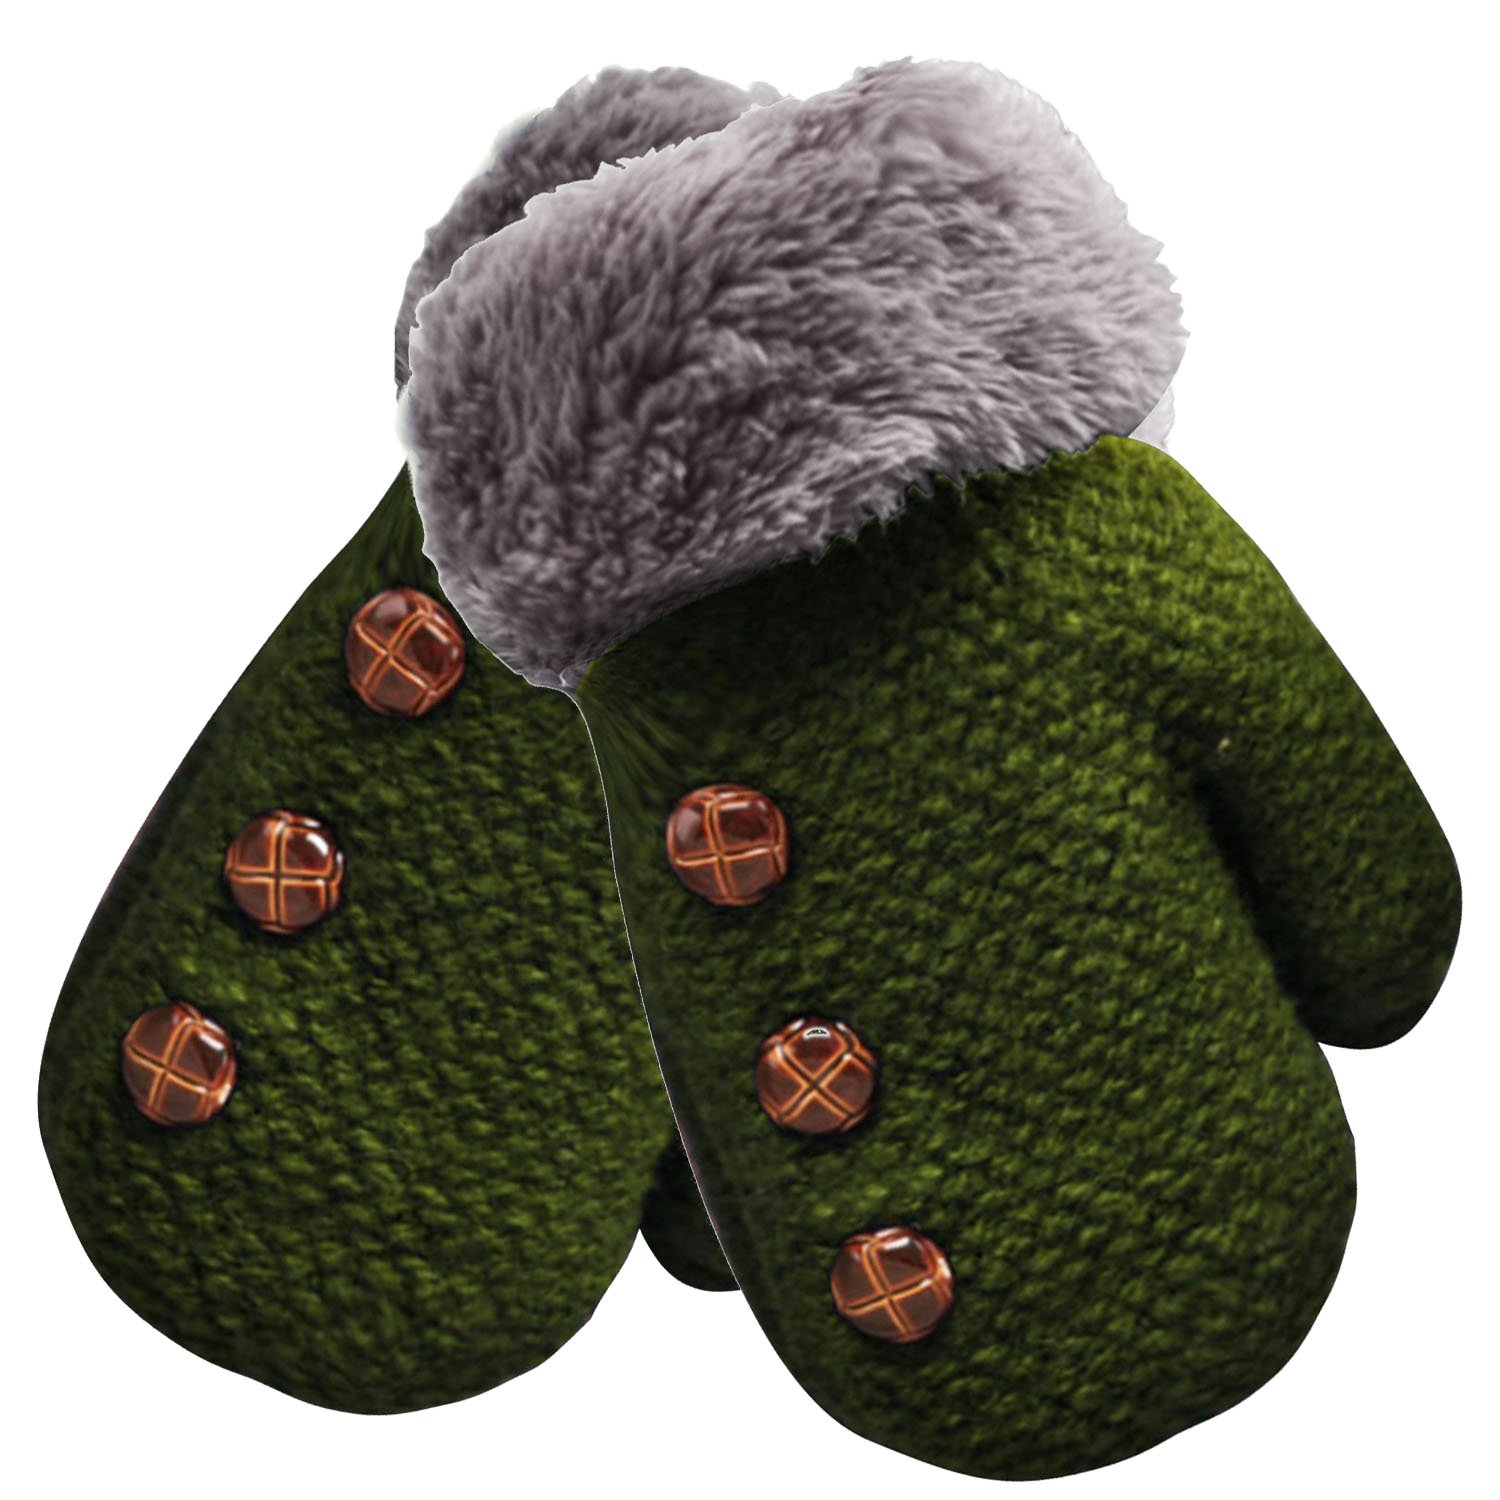 Beetest-EU-Cute Winter Warm Kid Baby Children Boy Girl Glove Green